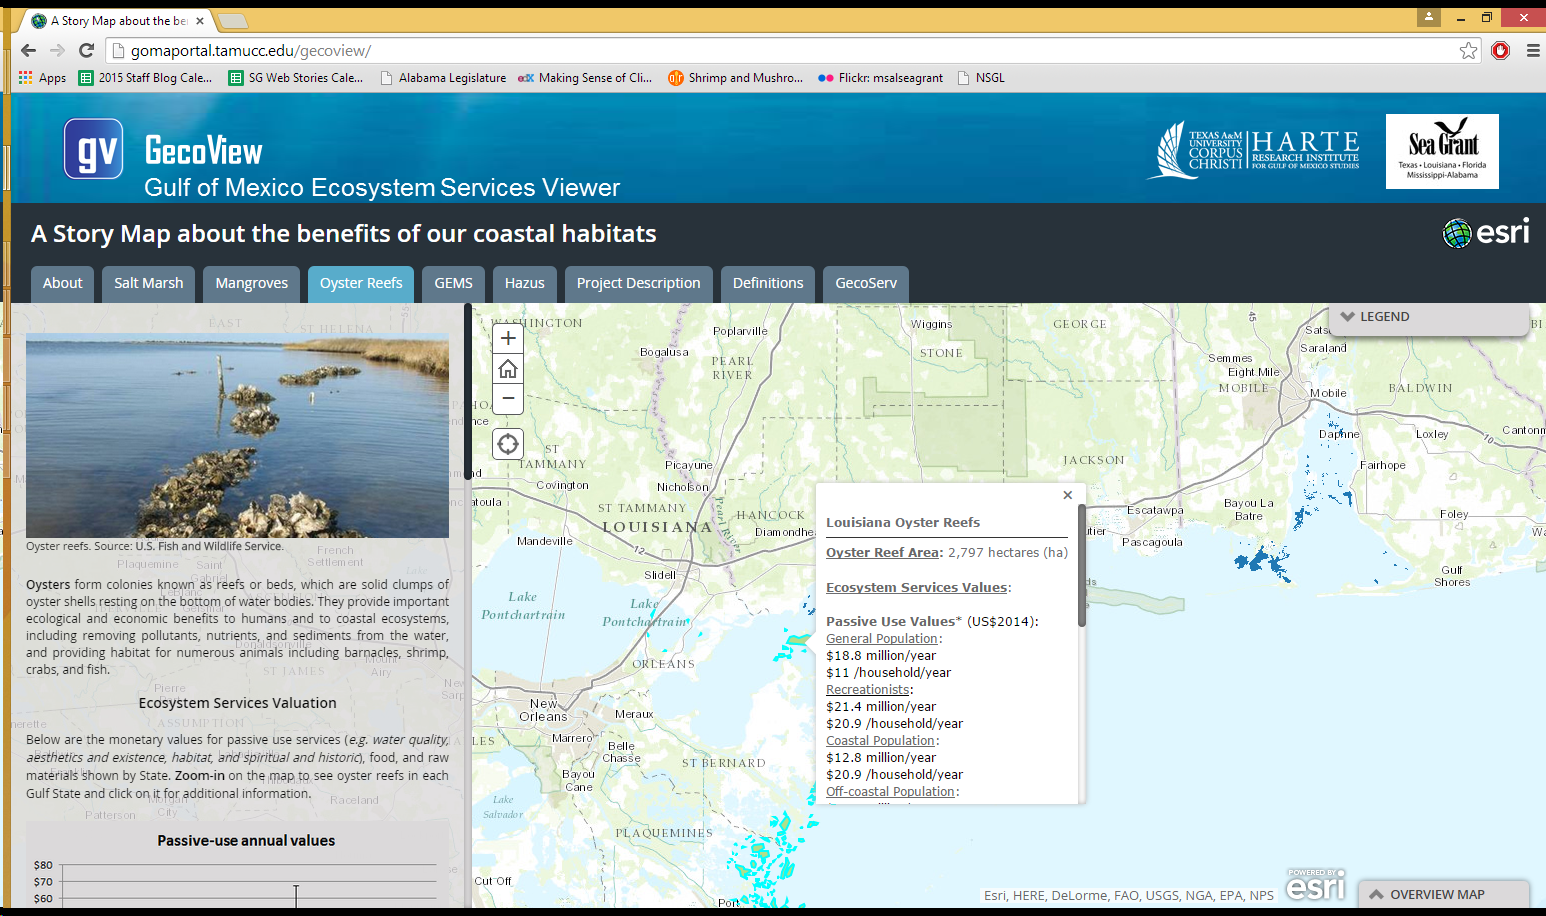 GecoView is an interactive website that provides the values of salt marshes, mangroves and oyster reefs in Gulf of Mexico states.